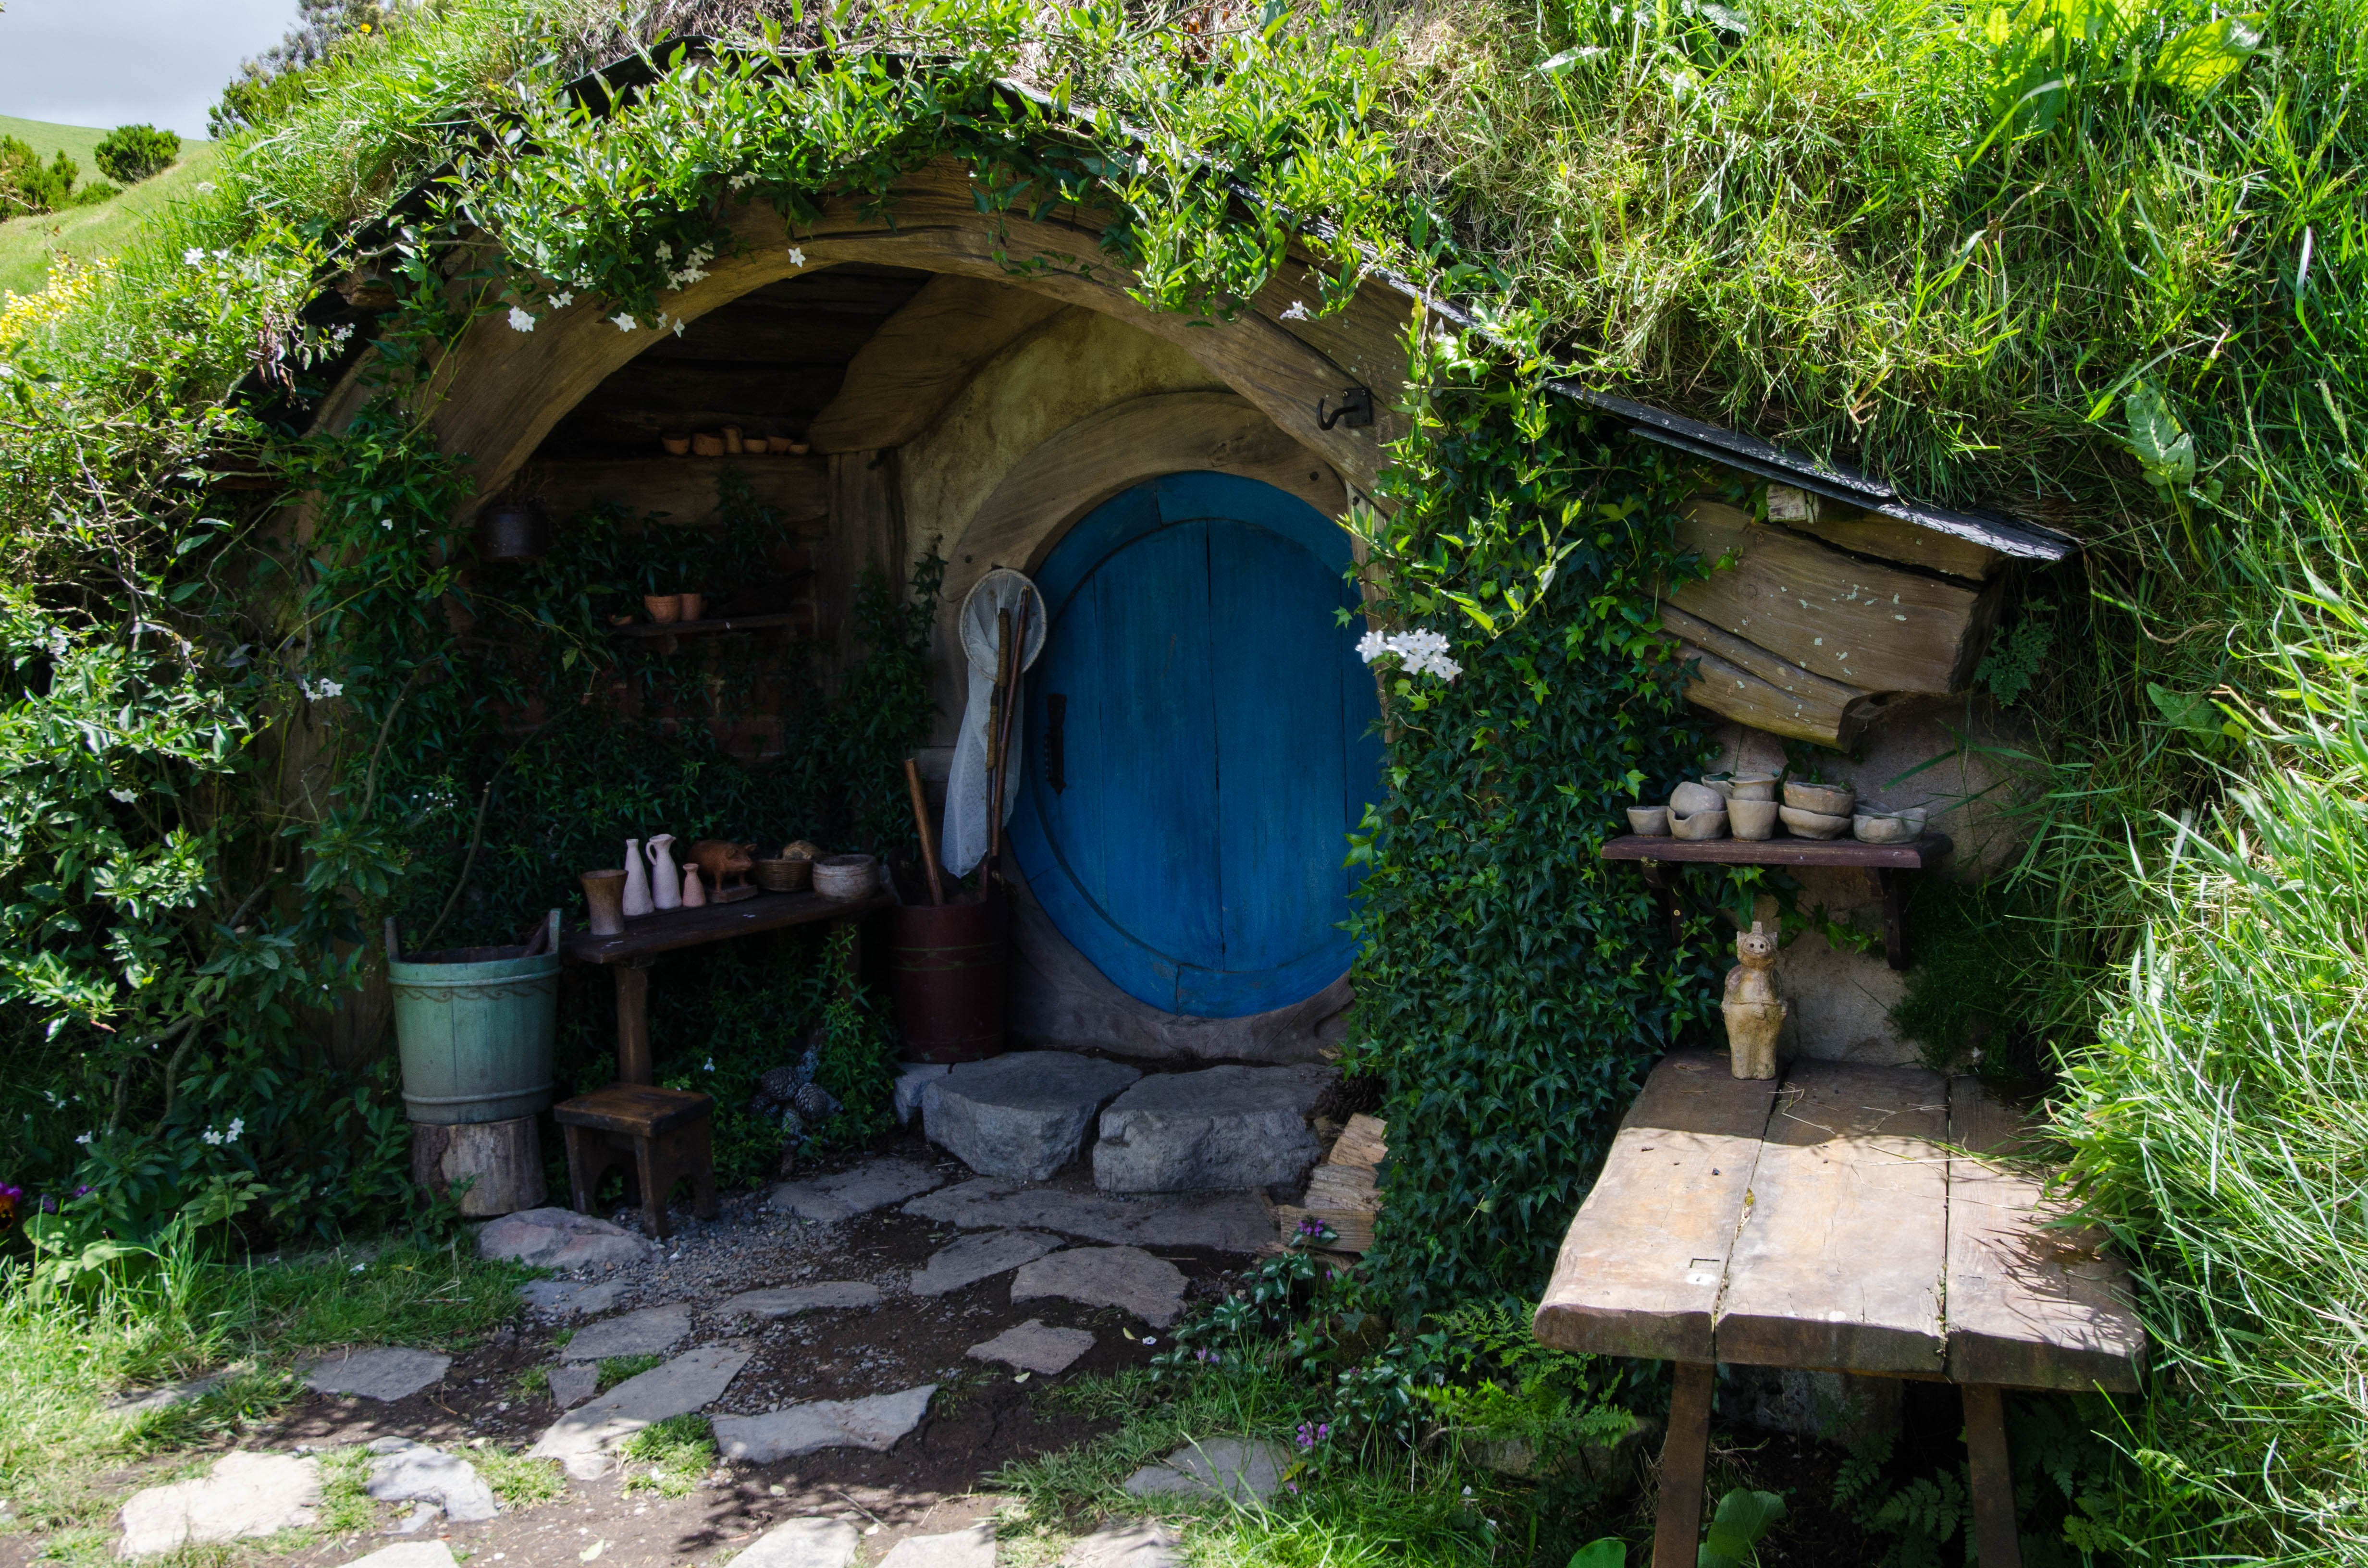 Going down the hobbit hole is a much smoother experience. (Photo by Jeff Hitchcock. CC BY 2.0)